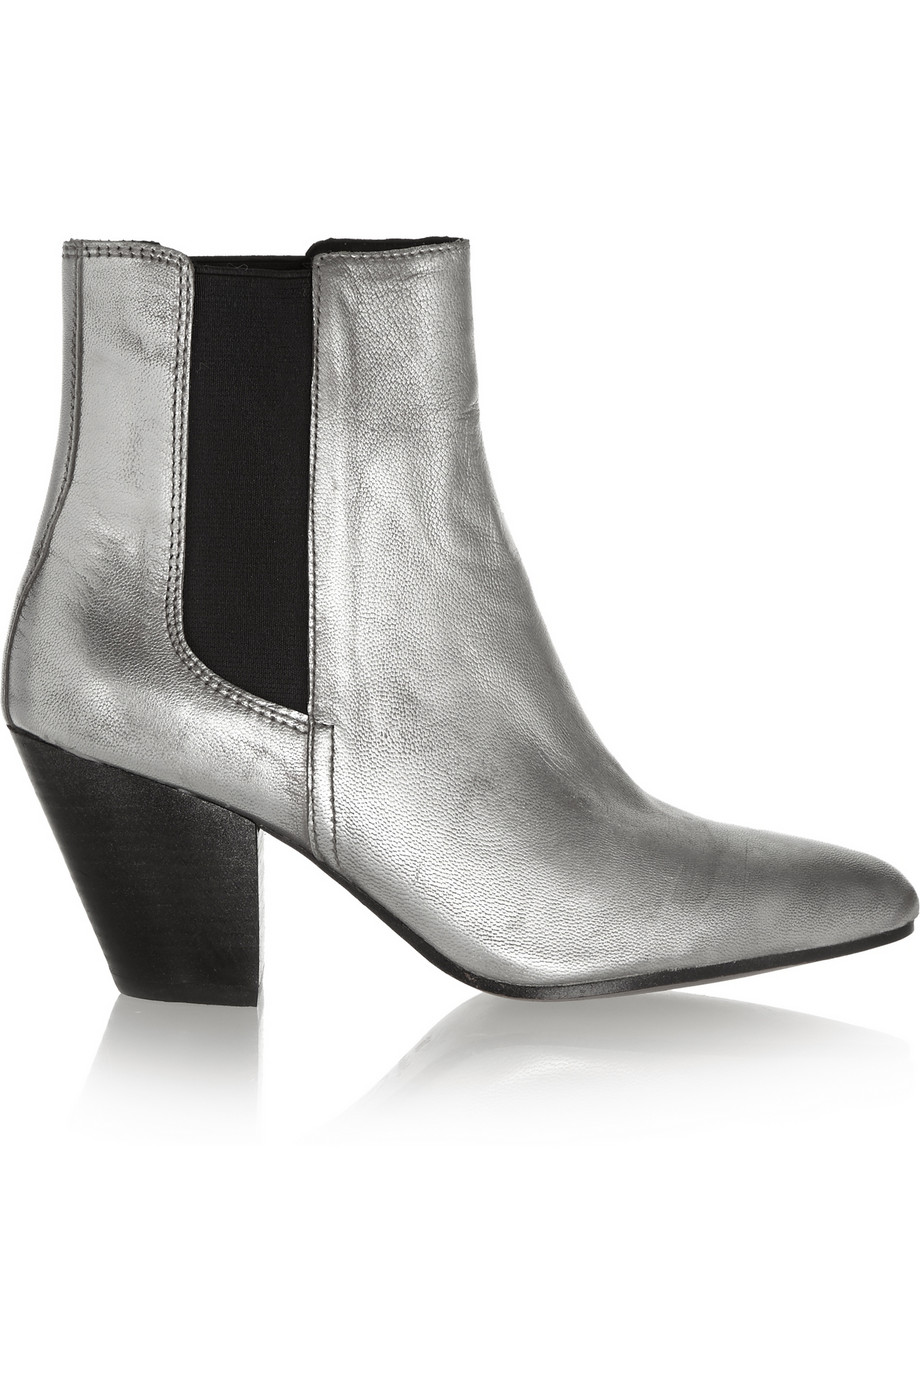 Ash obsession metallic leather ankle boots – 55% at the outnet.com